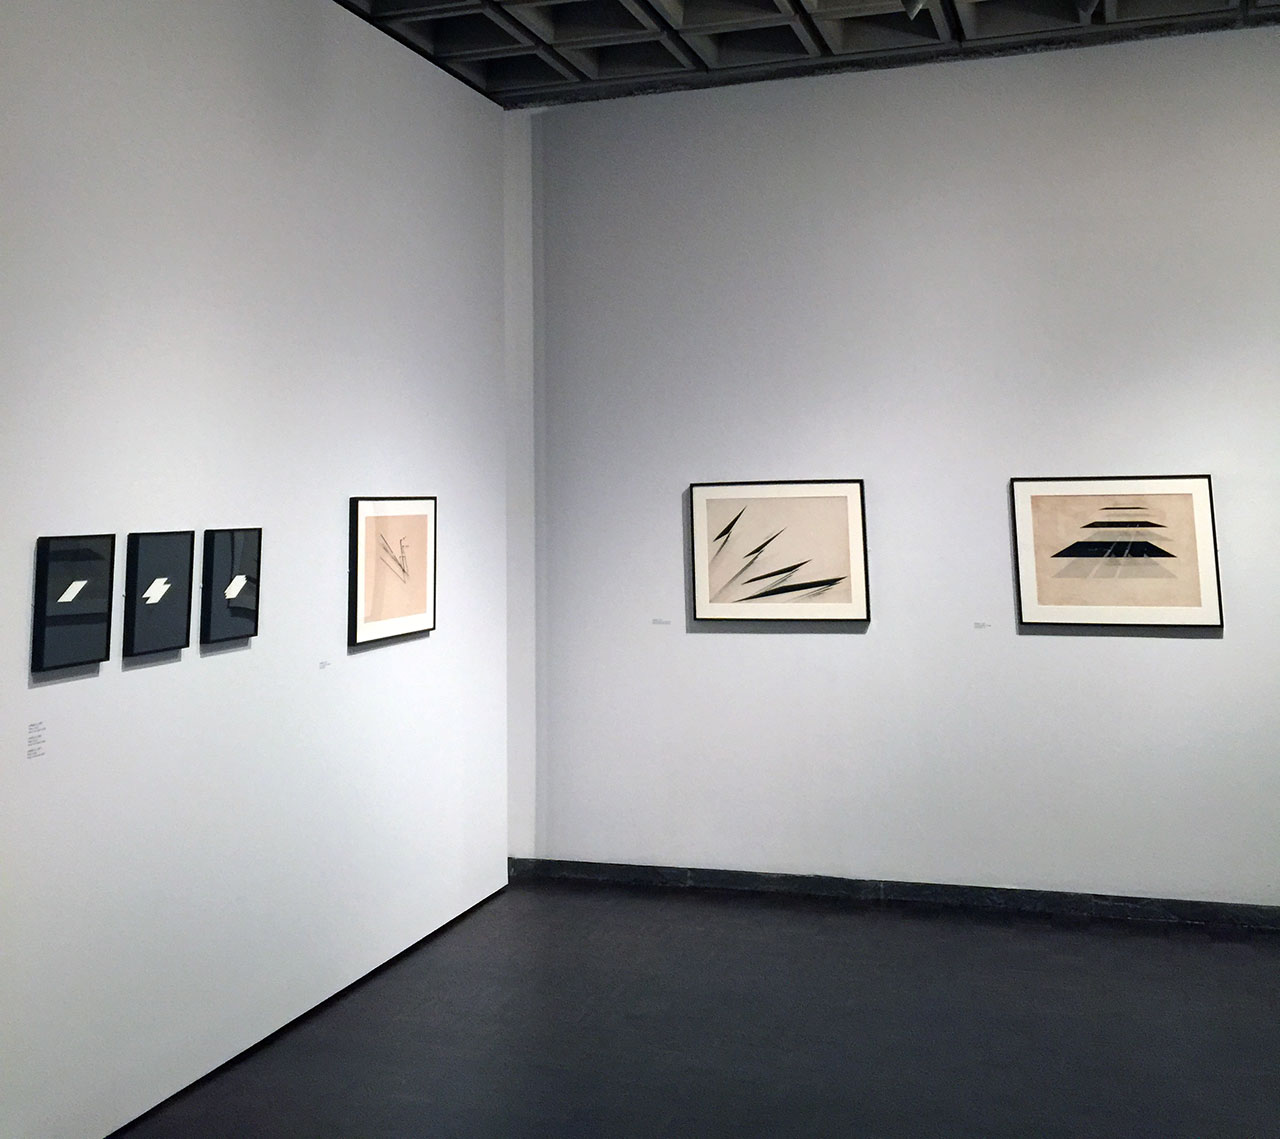 A view of the Nasreen Mohamedi exhibition at the Met Breuer